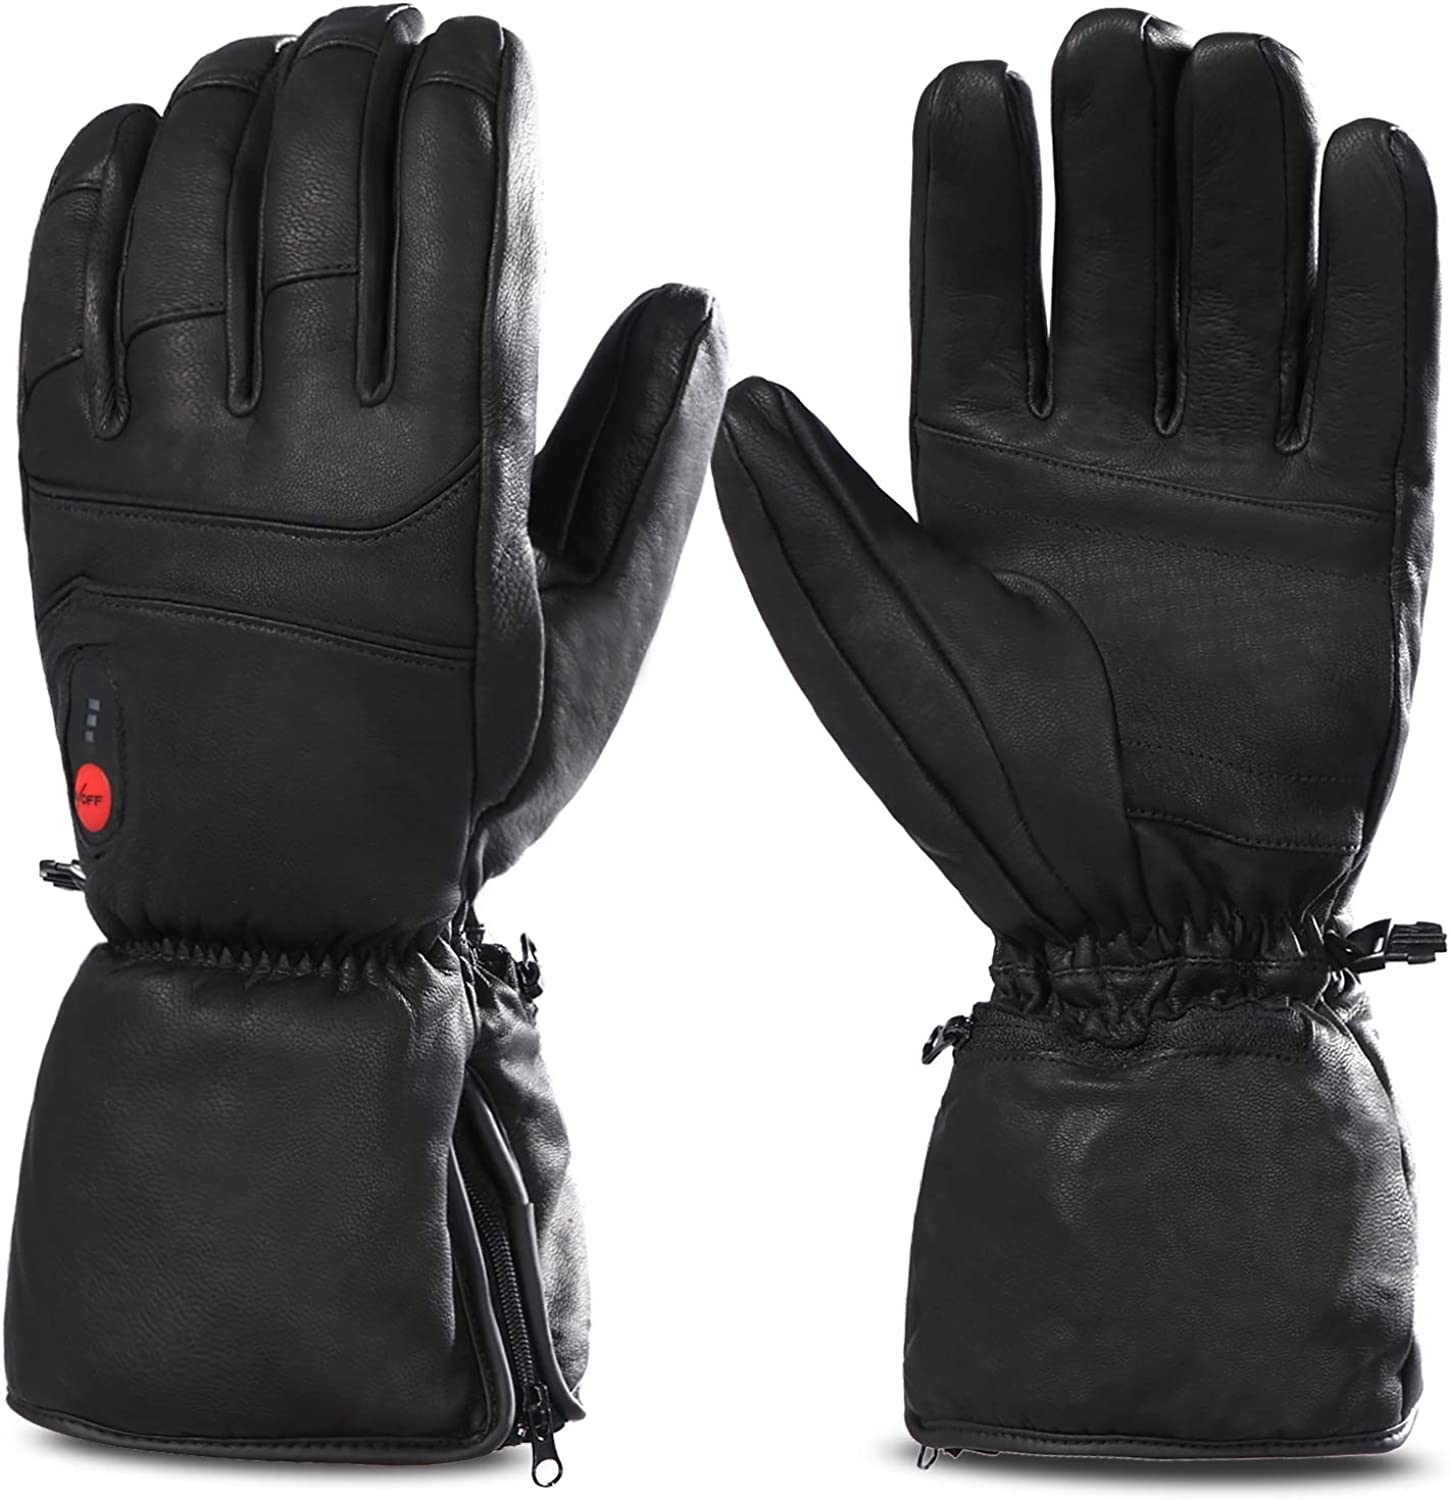 Savior Heated Gloves for Men Women, Rechargeable Electric Leather Gloves for Motorcycle Ski Hunting Riding Arthritis